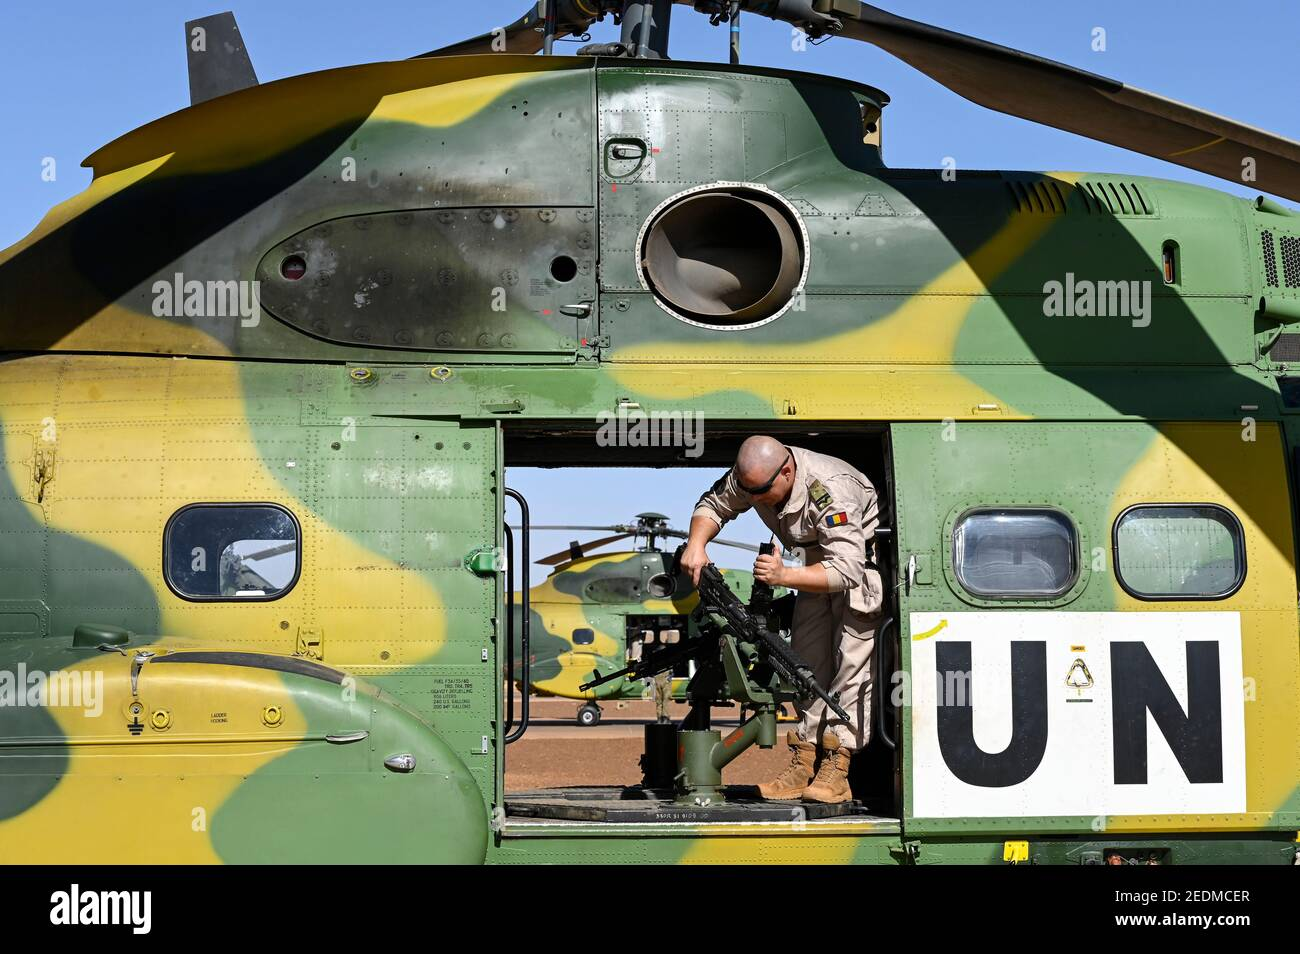 MALI, Gao, Minusma UN mission, Camp Castor, Helicopter unit Romanian Pumas for paramedic rescue flights, Helicopter IAR-330 Puma L-RM, combatant at american machine gun M240 B of american company FN Manufacturing Inc. in Columbia / MALI, Gao, UN Mission Minusma, Multidimensionale Integrierte Stabilisierungsmission der Vereinten Nationen in Mali, CAMP CASTOR , rumänische Hubschrauber Staffel für medizinische Hilfe, Helikopter IAR-330 Puma L-RM, Maschinengewehr M240 B des US Hersteller FN Manufacturing, Inc. in Columbia Stock Photo